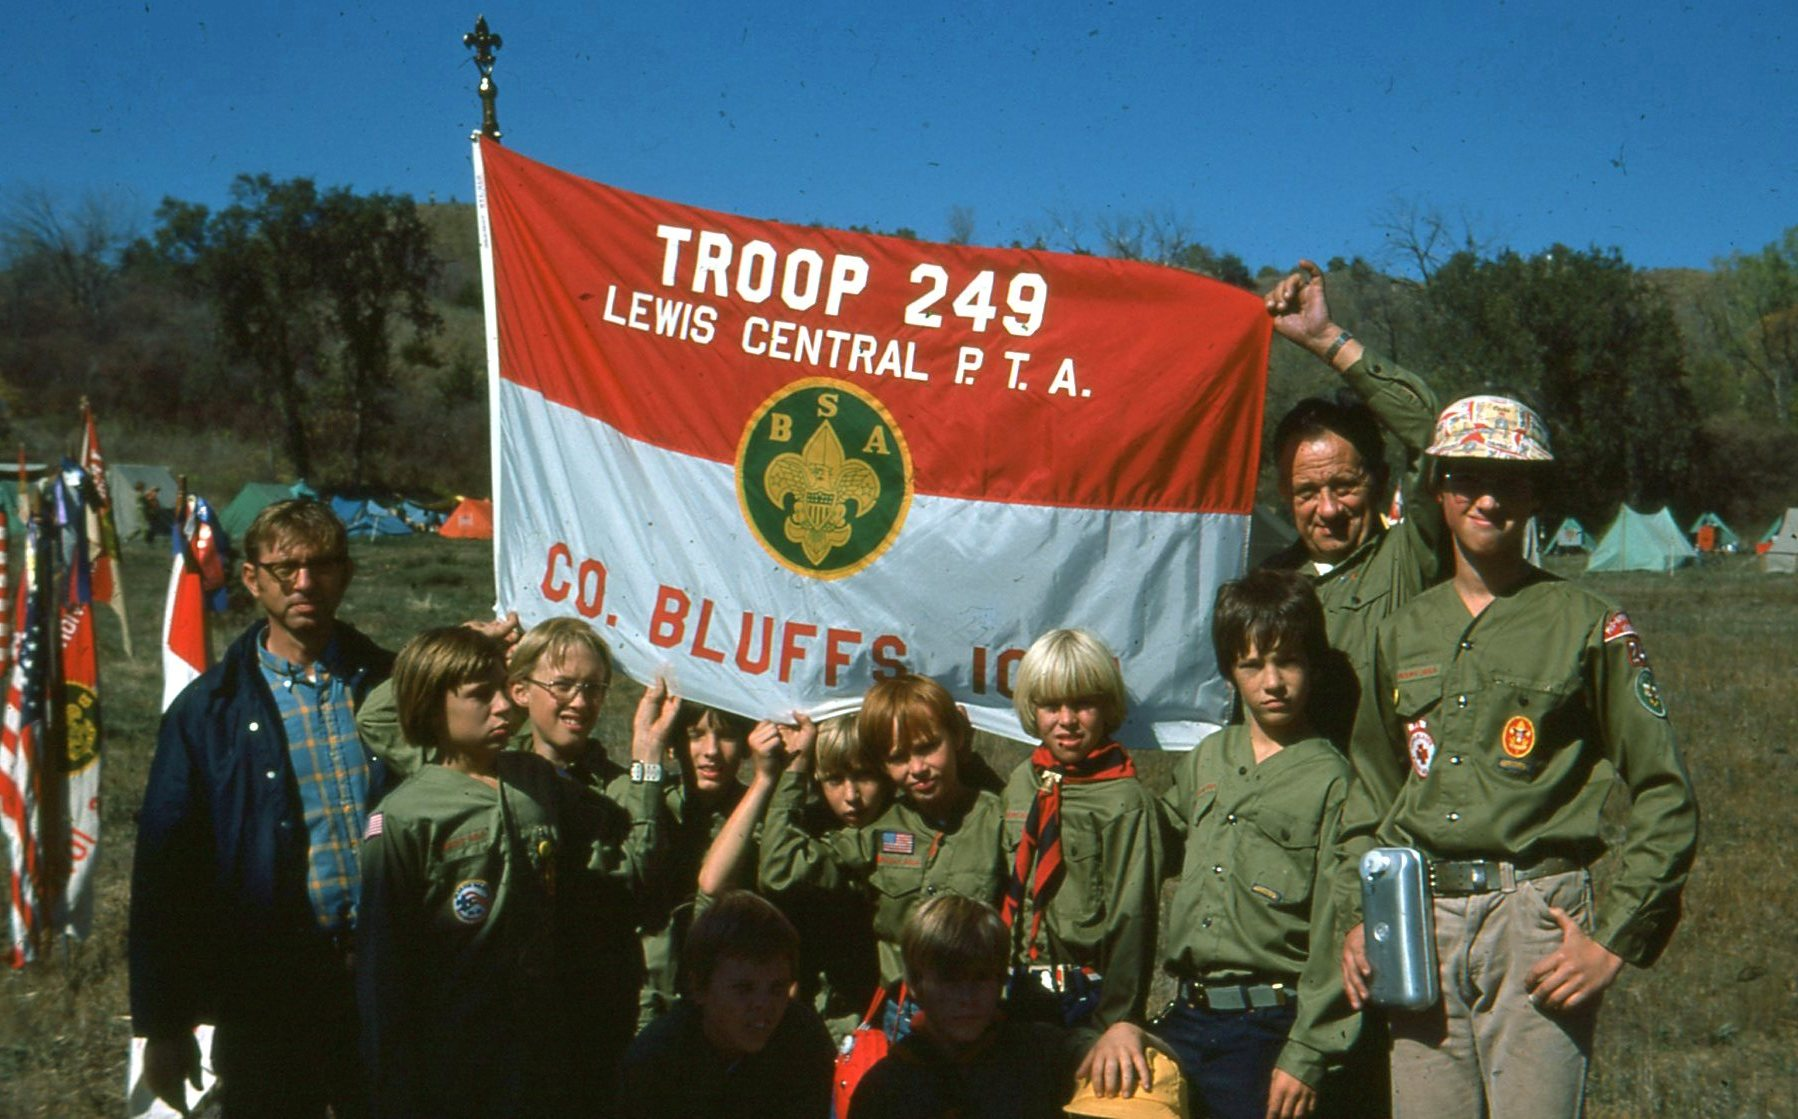 Troop 249 of Council Bluffs, Iowa